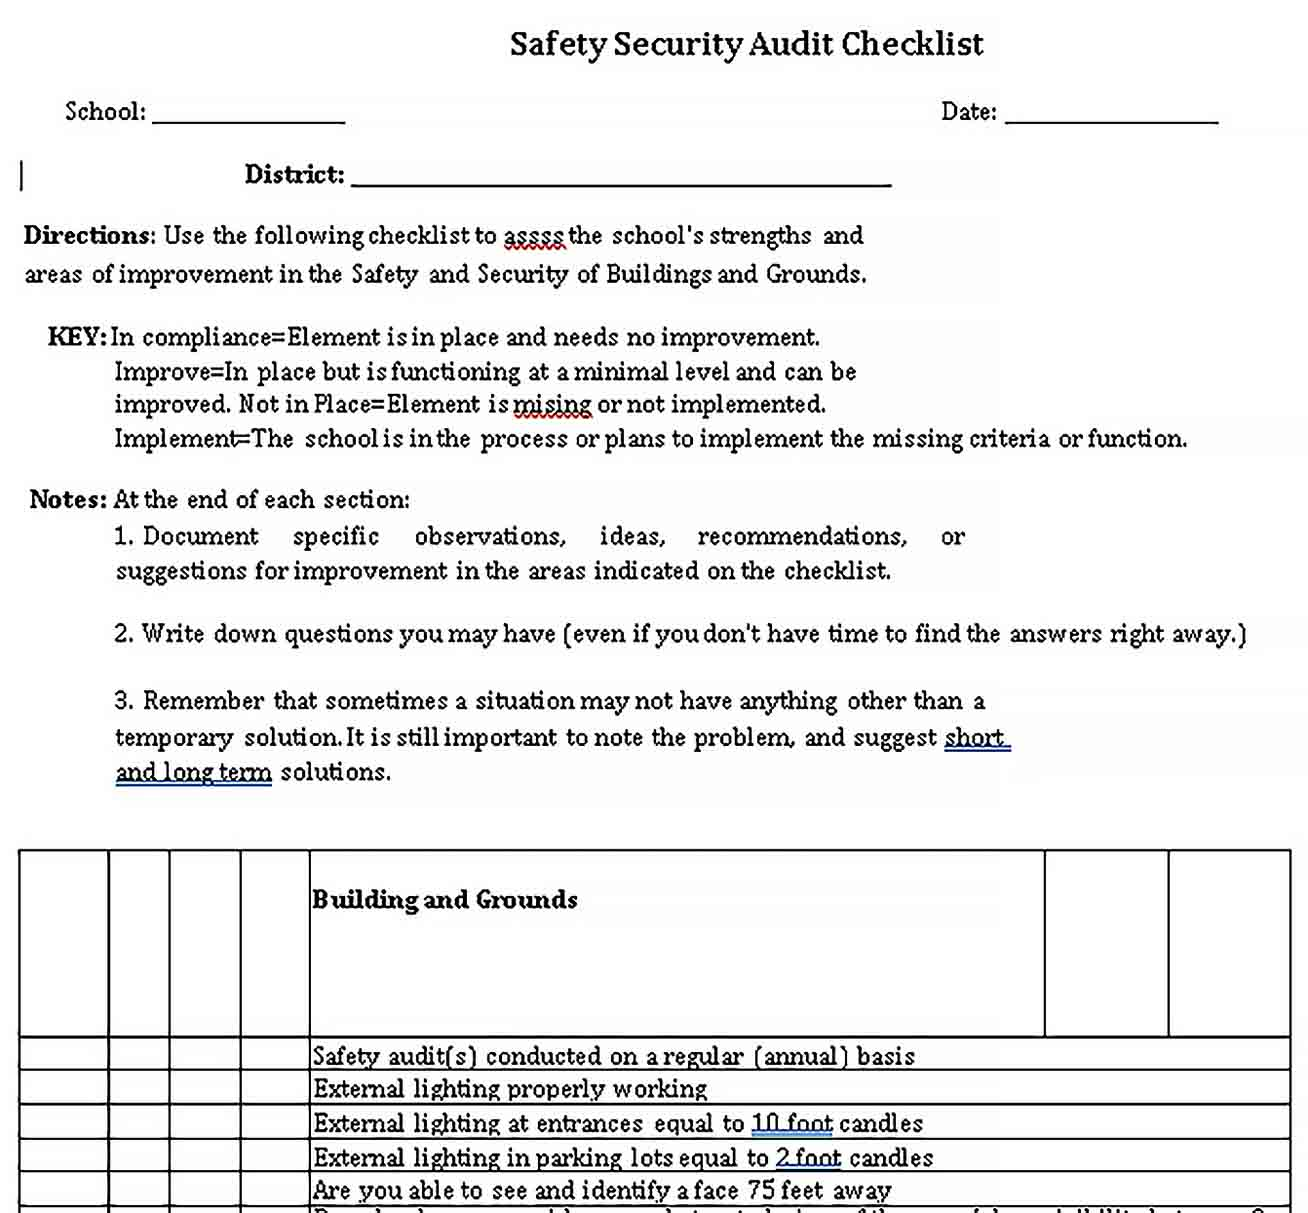 Template Safety Security Audit Checklist Examples